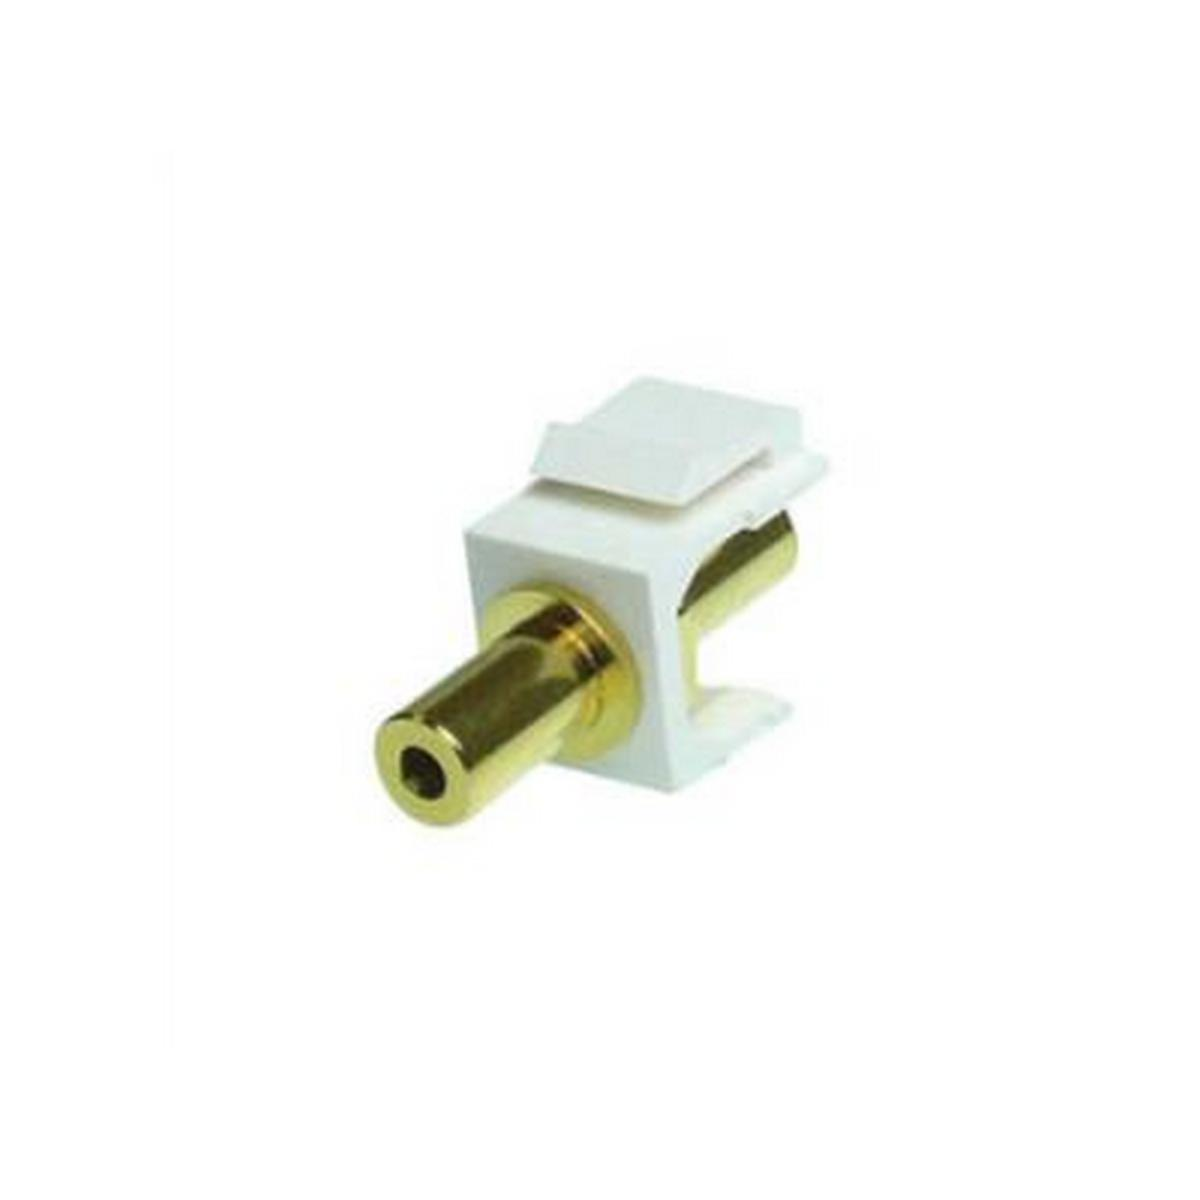 NTW 3KY-FF/3.5-WHT 3.5mm Stereo Audio Keystone Coupler